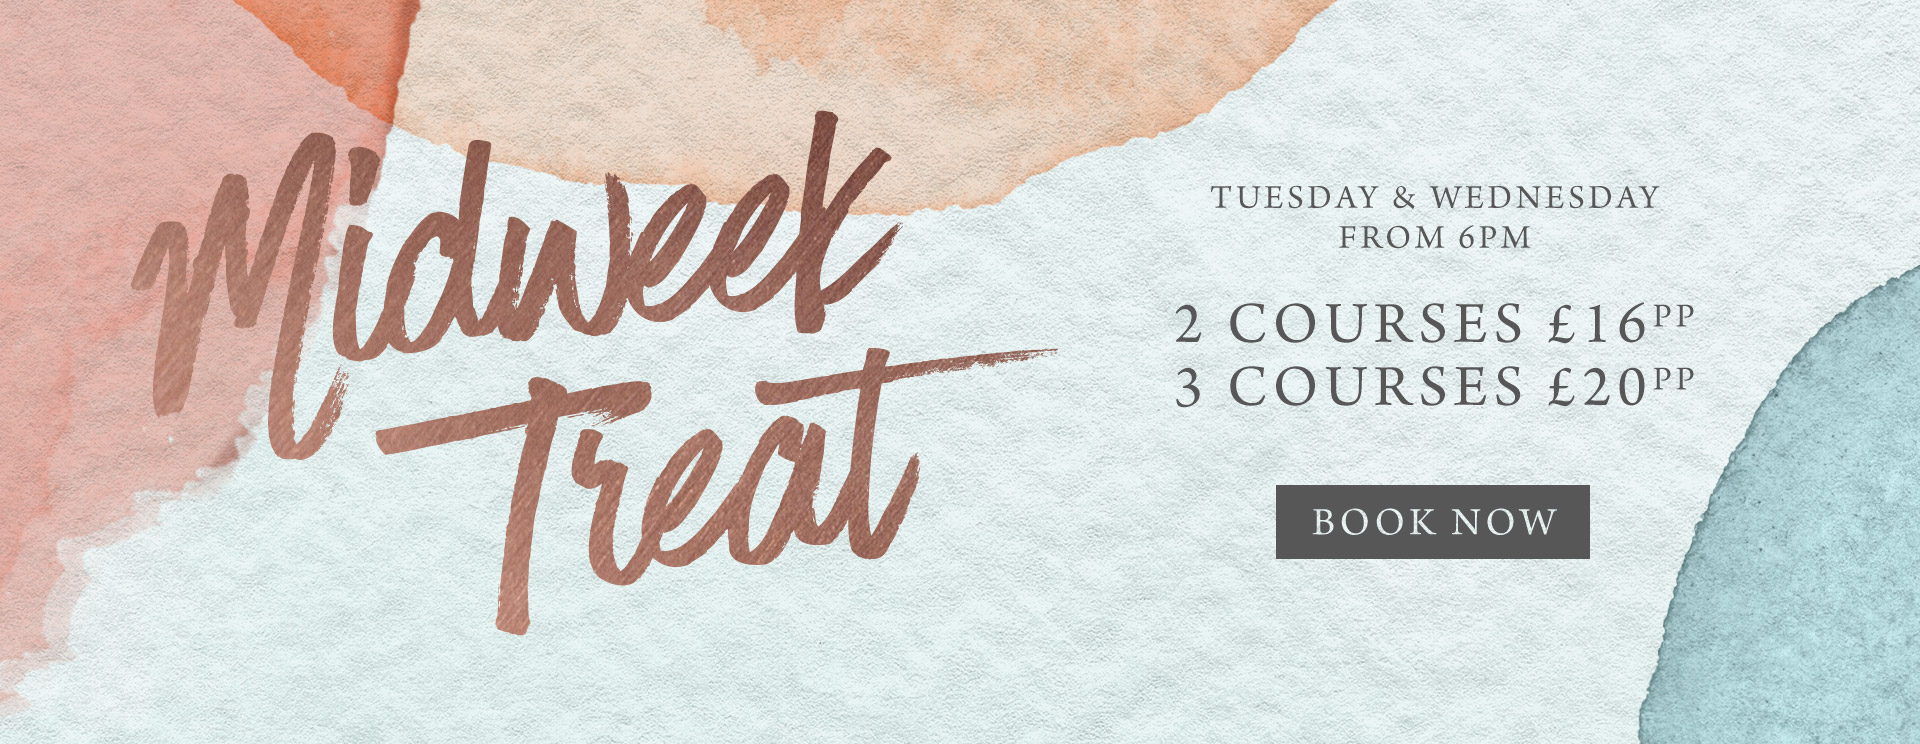 Midweek treat at The White Hart - Book now